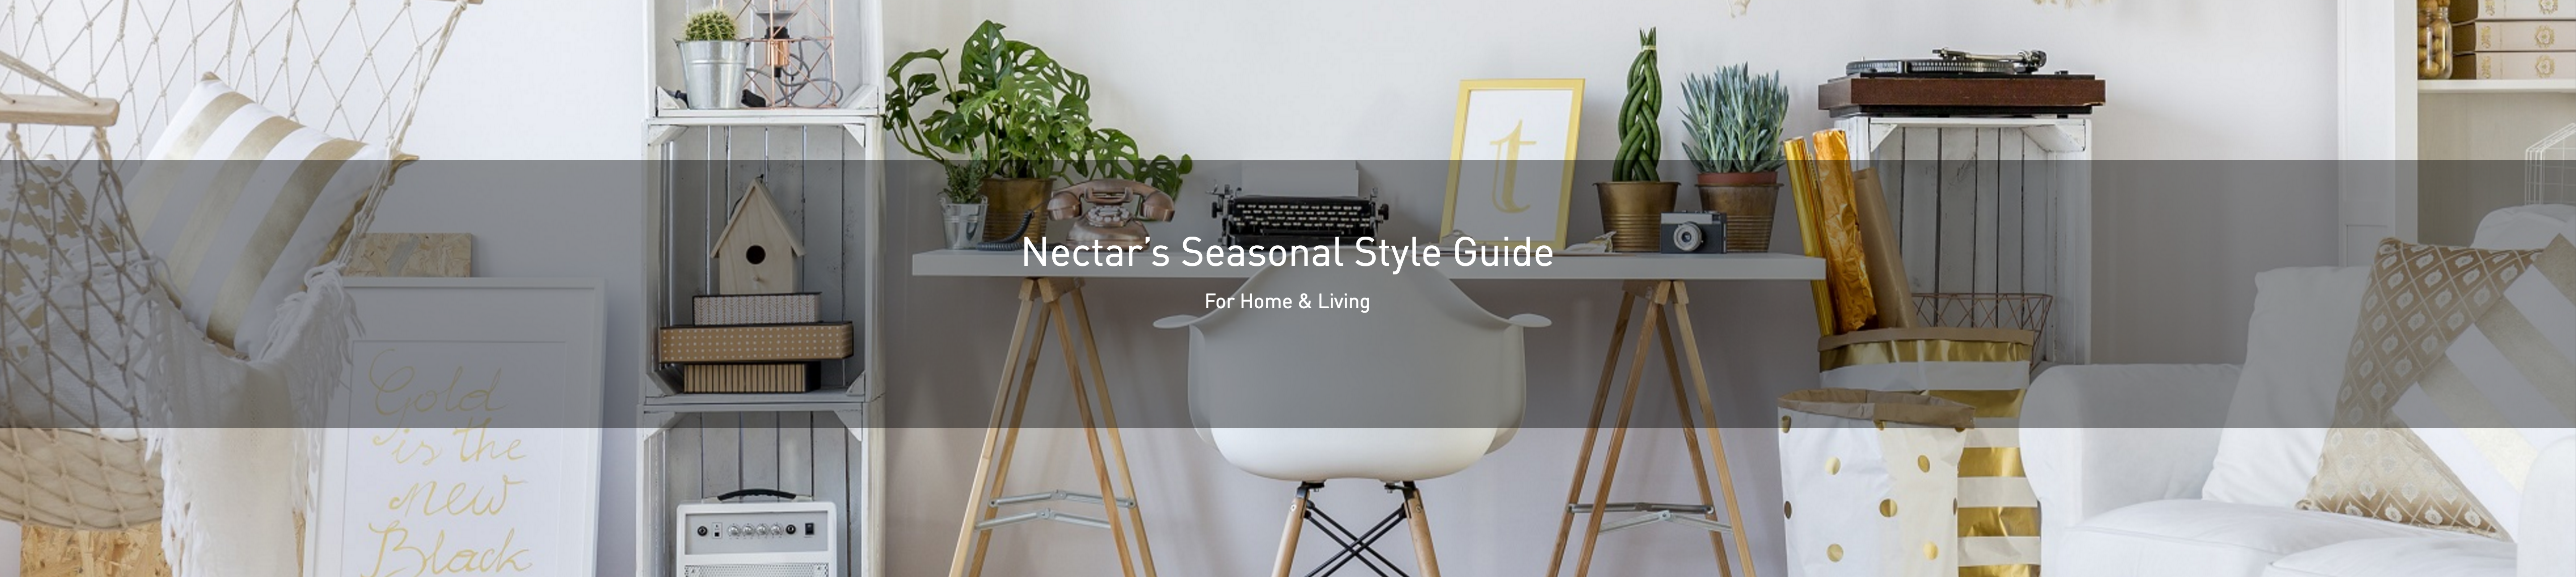 Nectar's Seasonal Style Guide